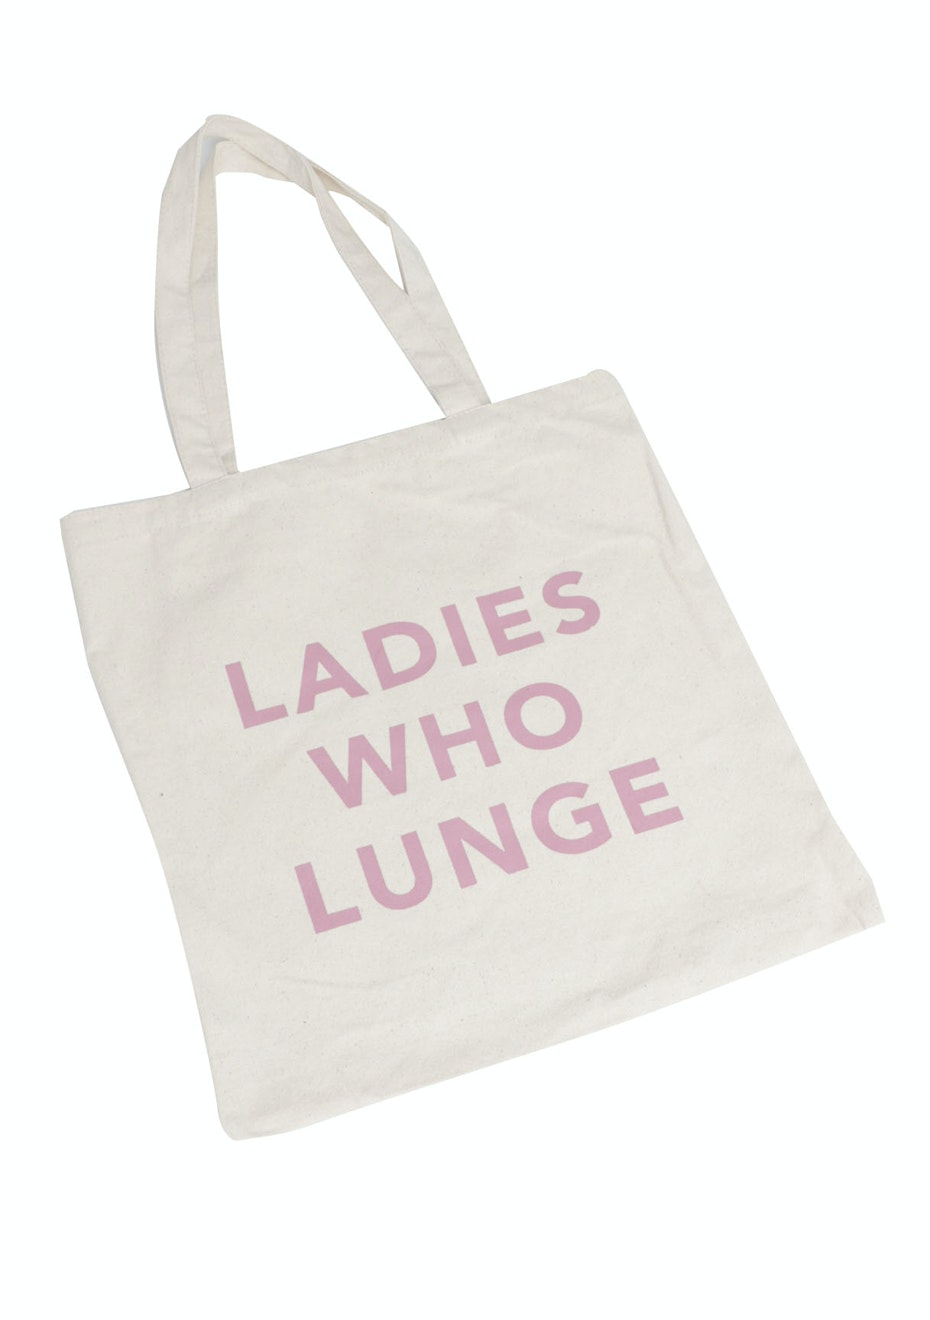 LADIES WHO LUNGE - Tote Bag